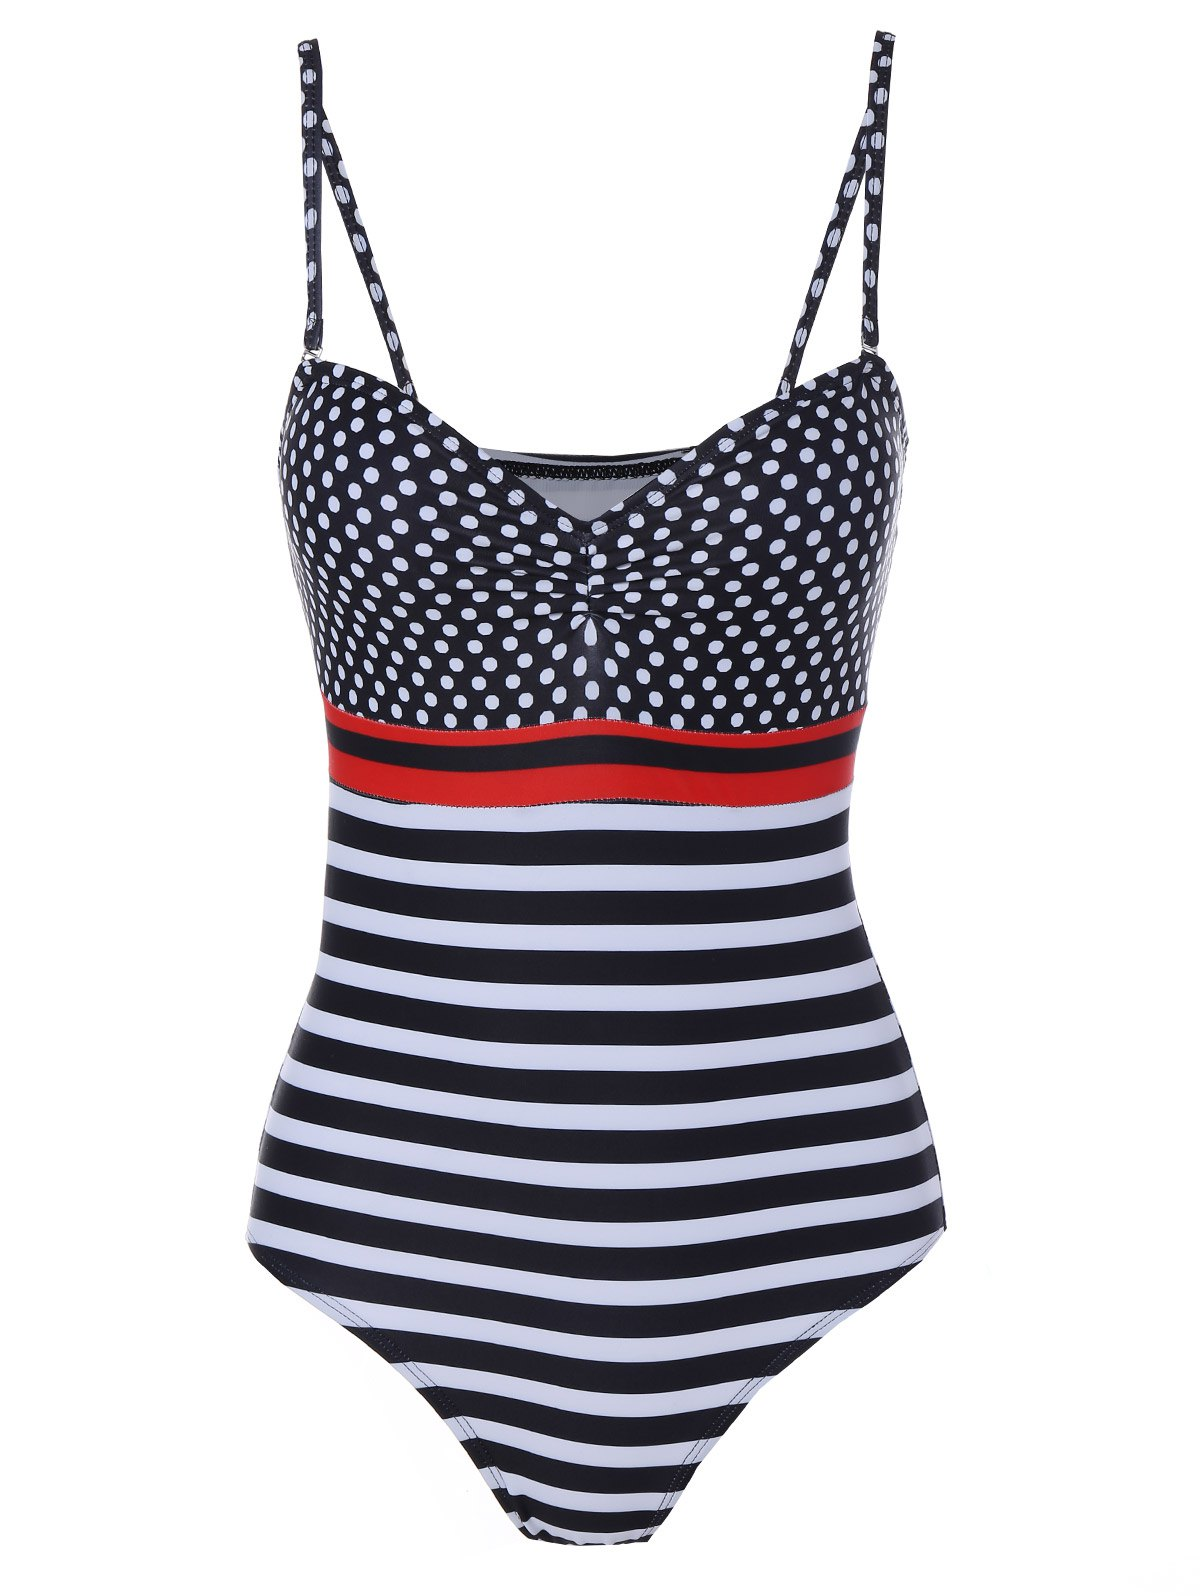 Trendy Spaghetti Strap Polka Dot Striped One Piece Swimwear For Women - COLORMIX S